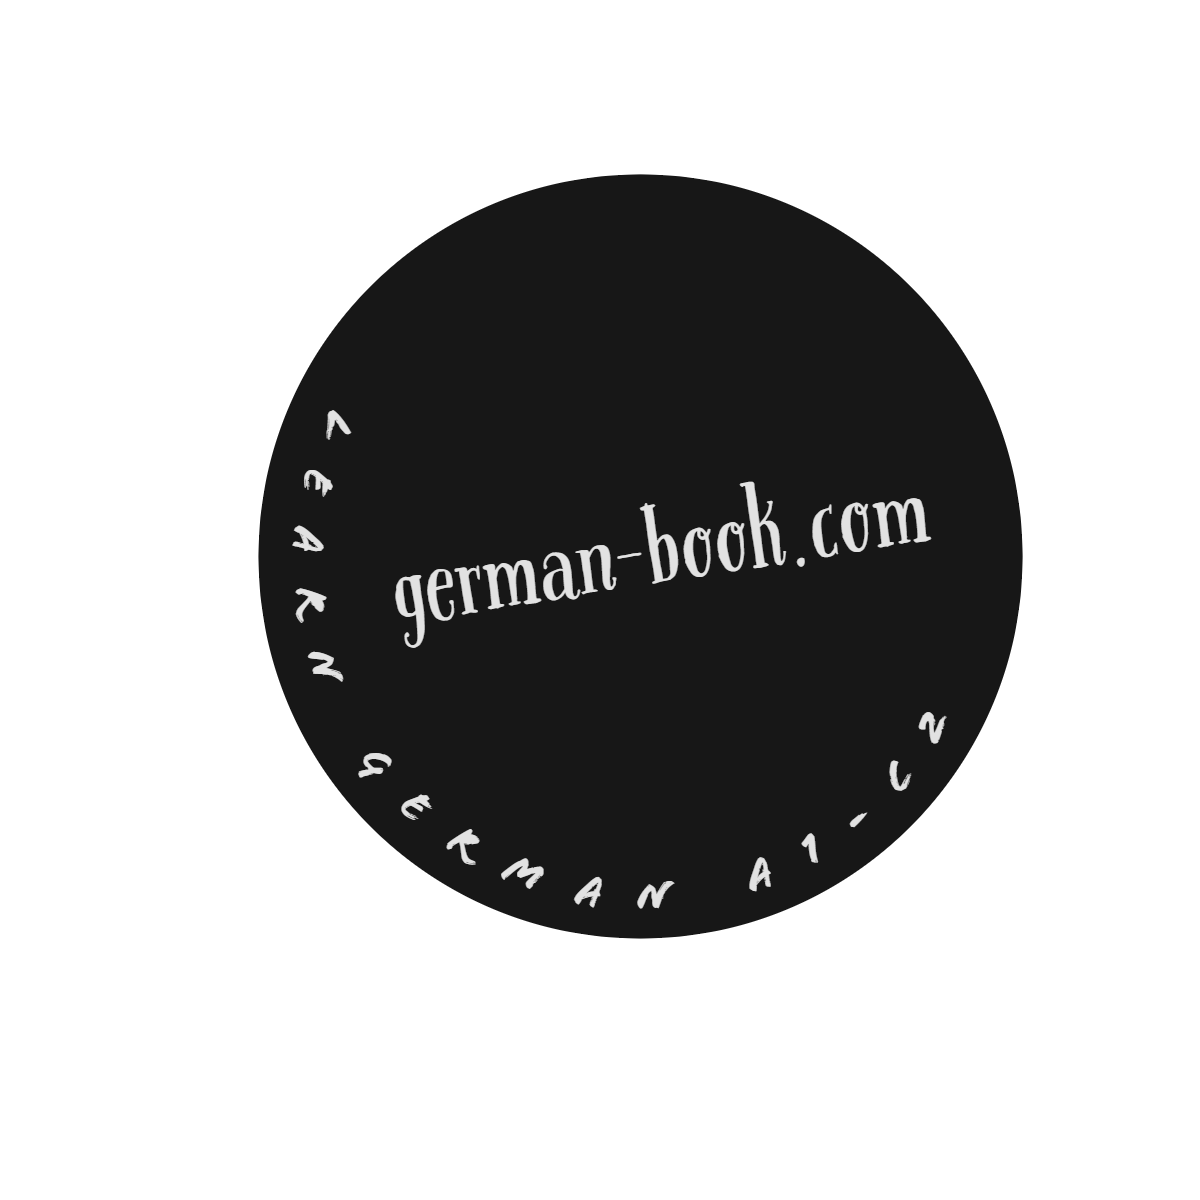 Learn German-book.com A1 – C2